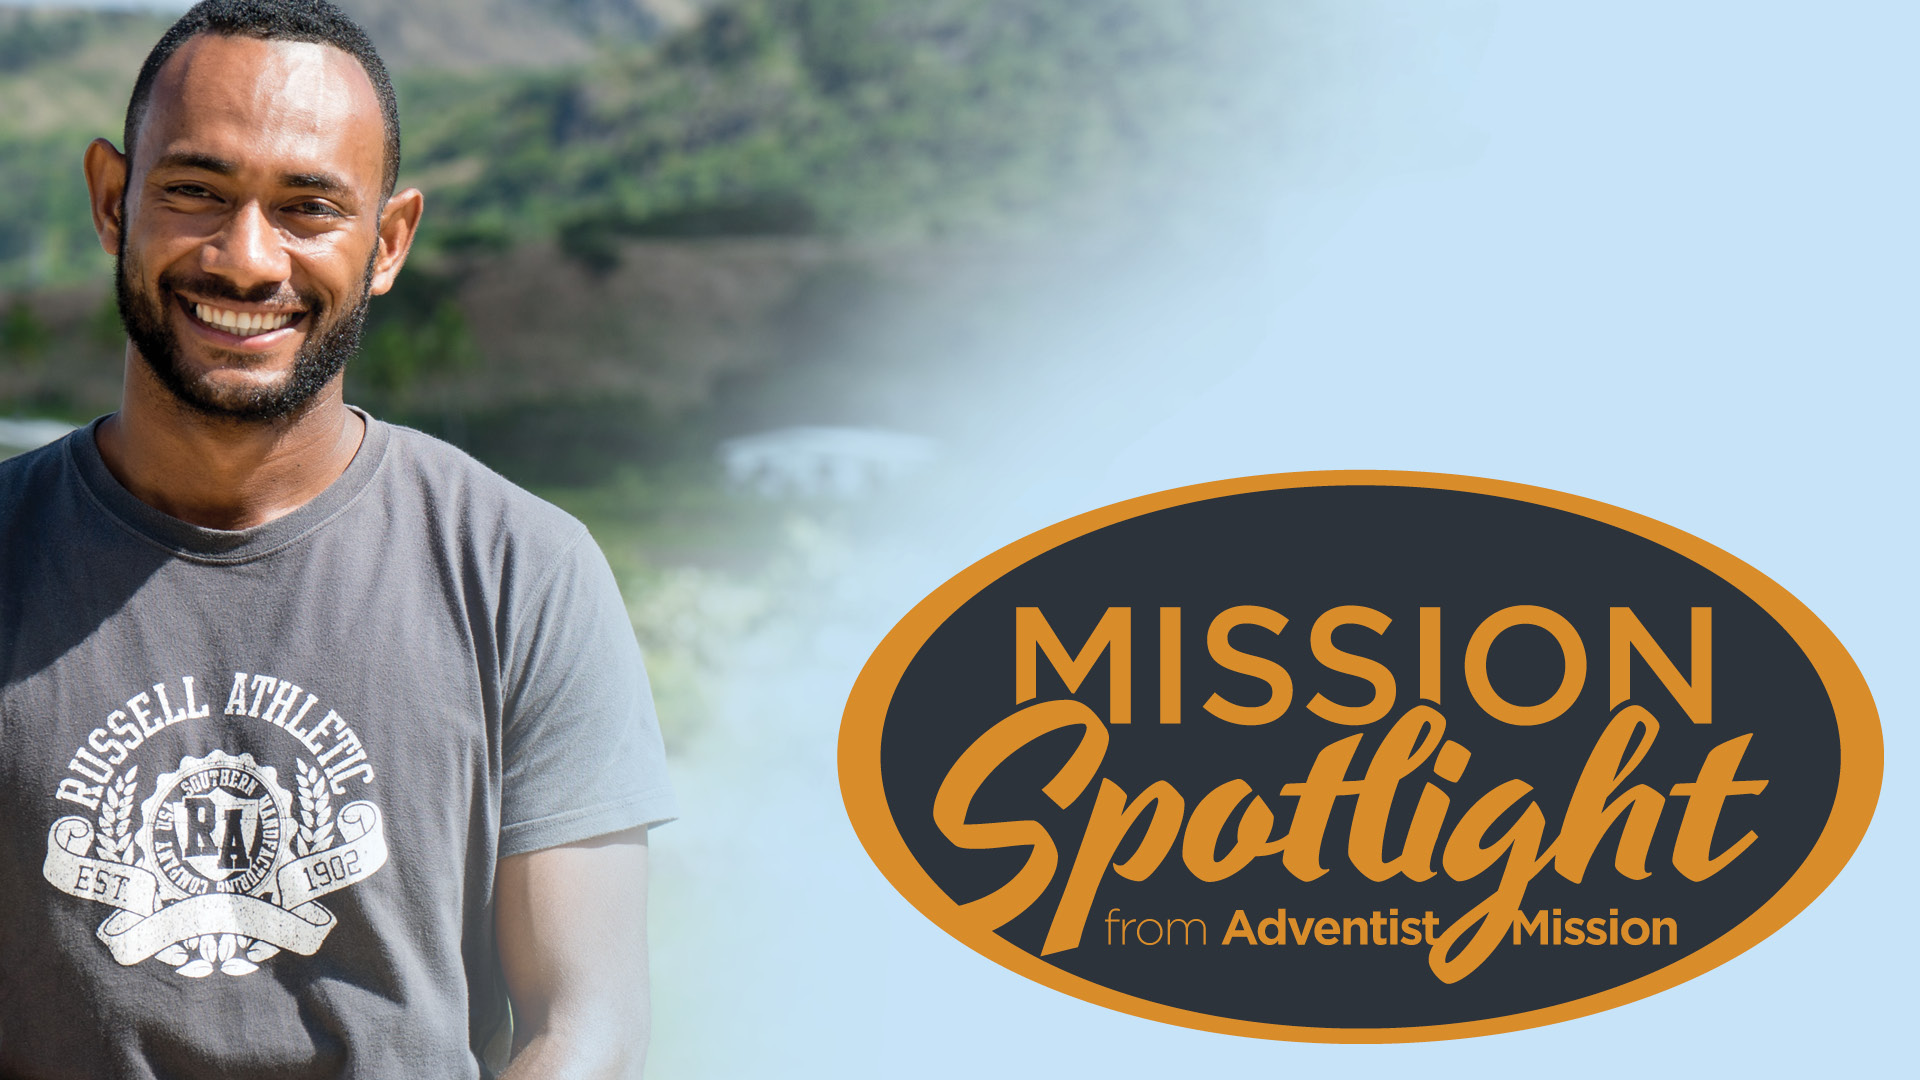 1. Mission Spotlight